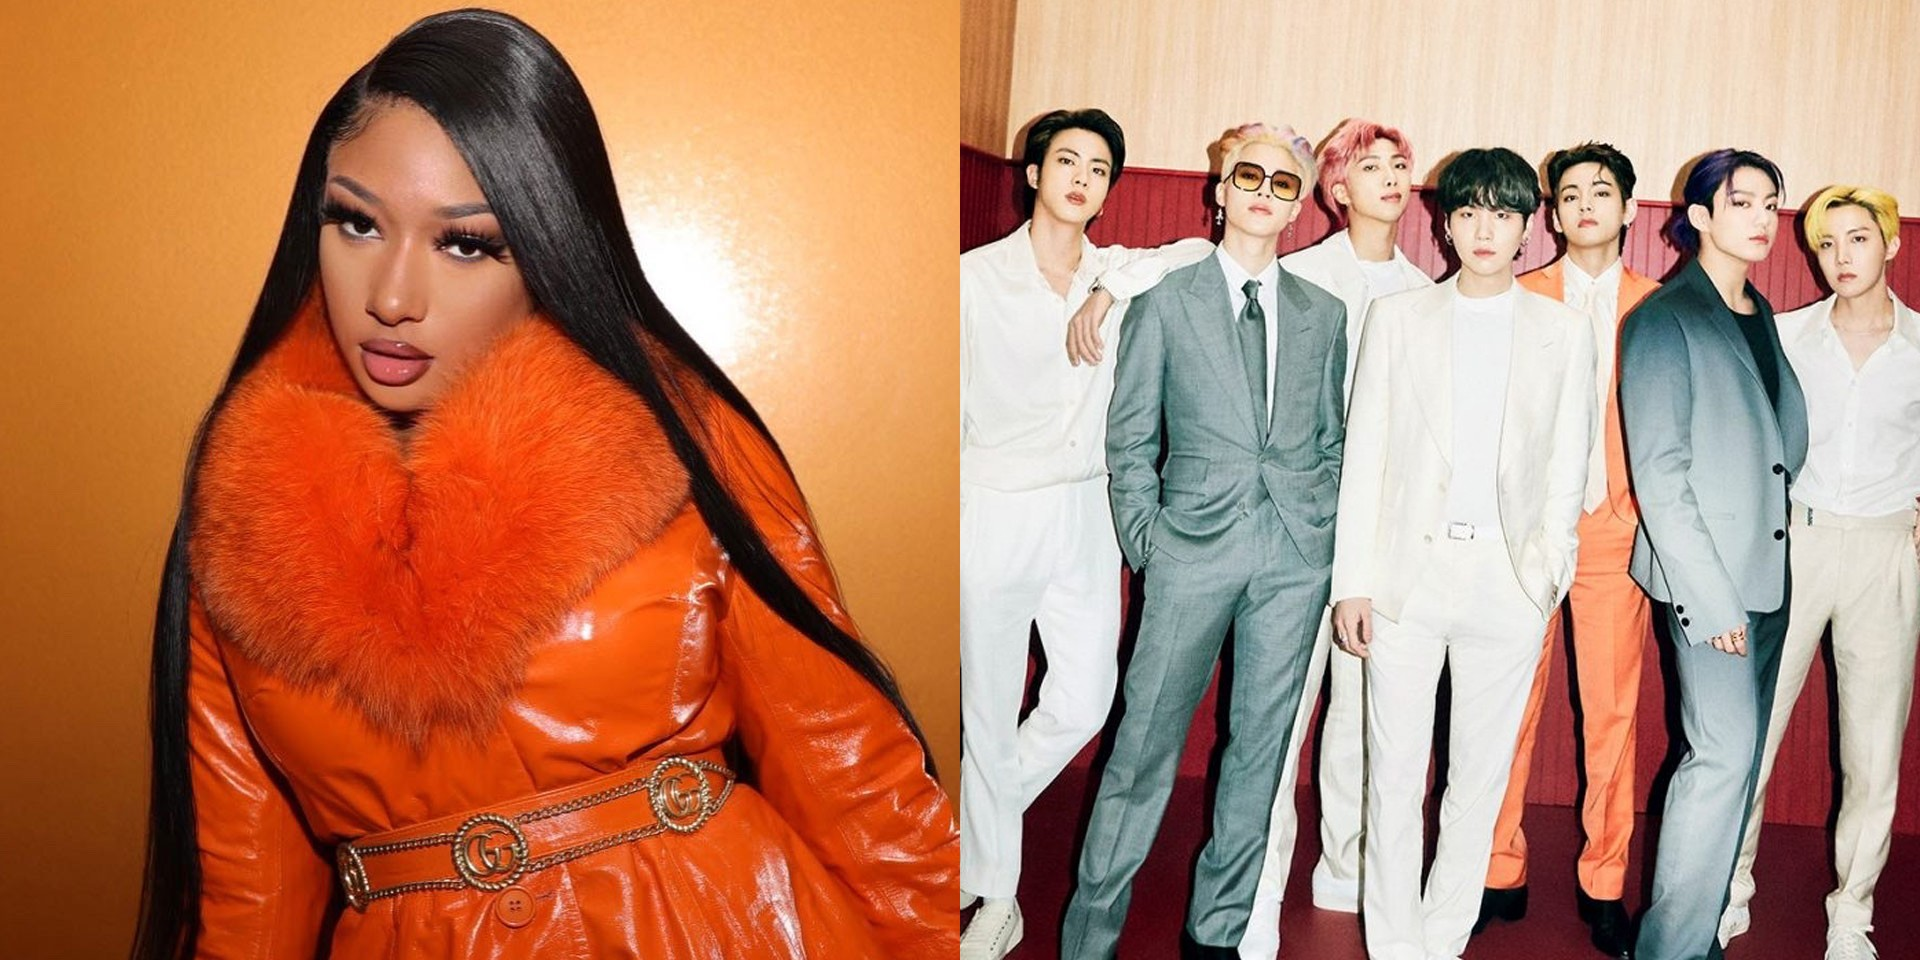 BTS and Megan Thee Stallion are releasing their 'Butter' remix this Friday